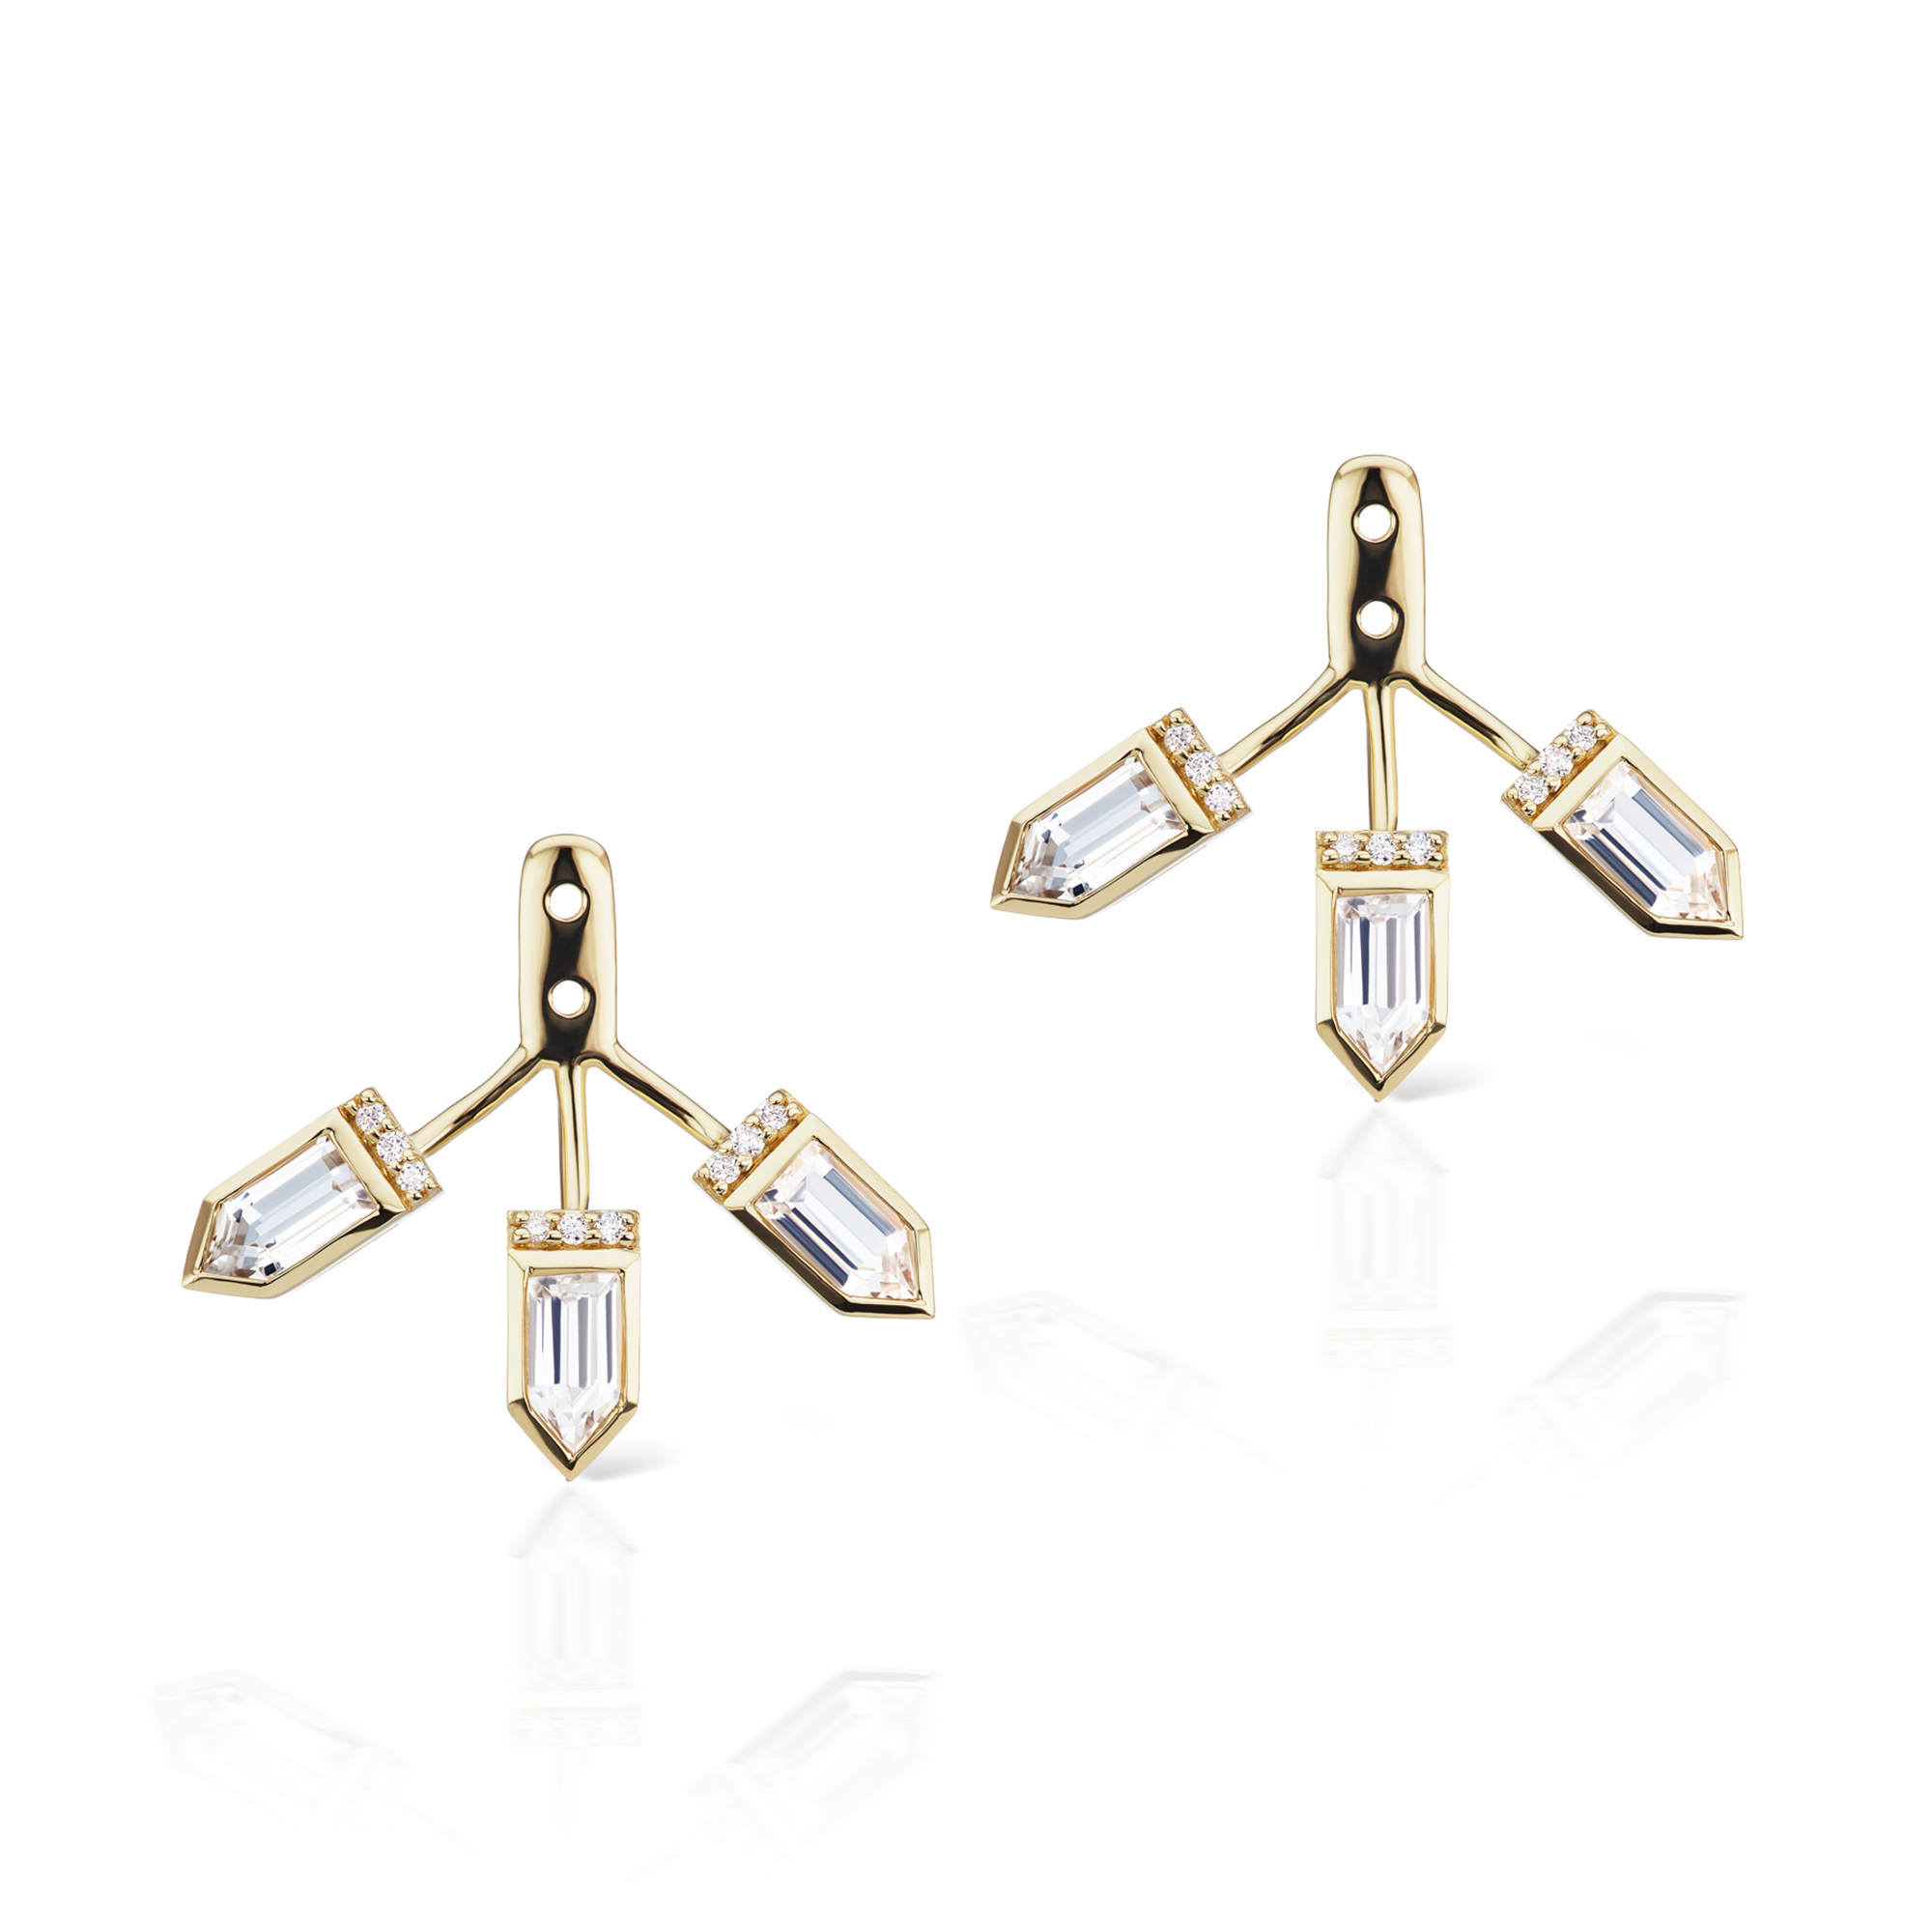 Jane Taylor White Topaz Cirque Triple Arrow Earring Jackets